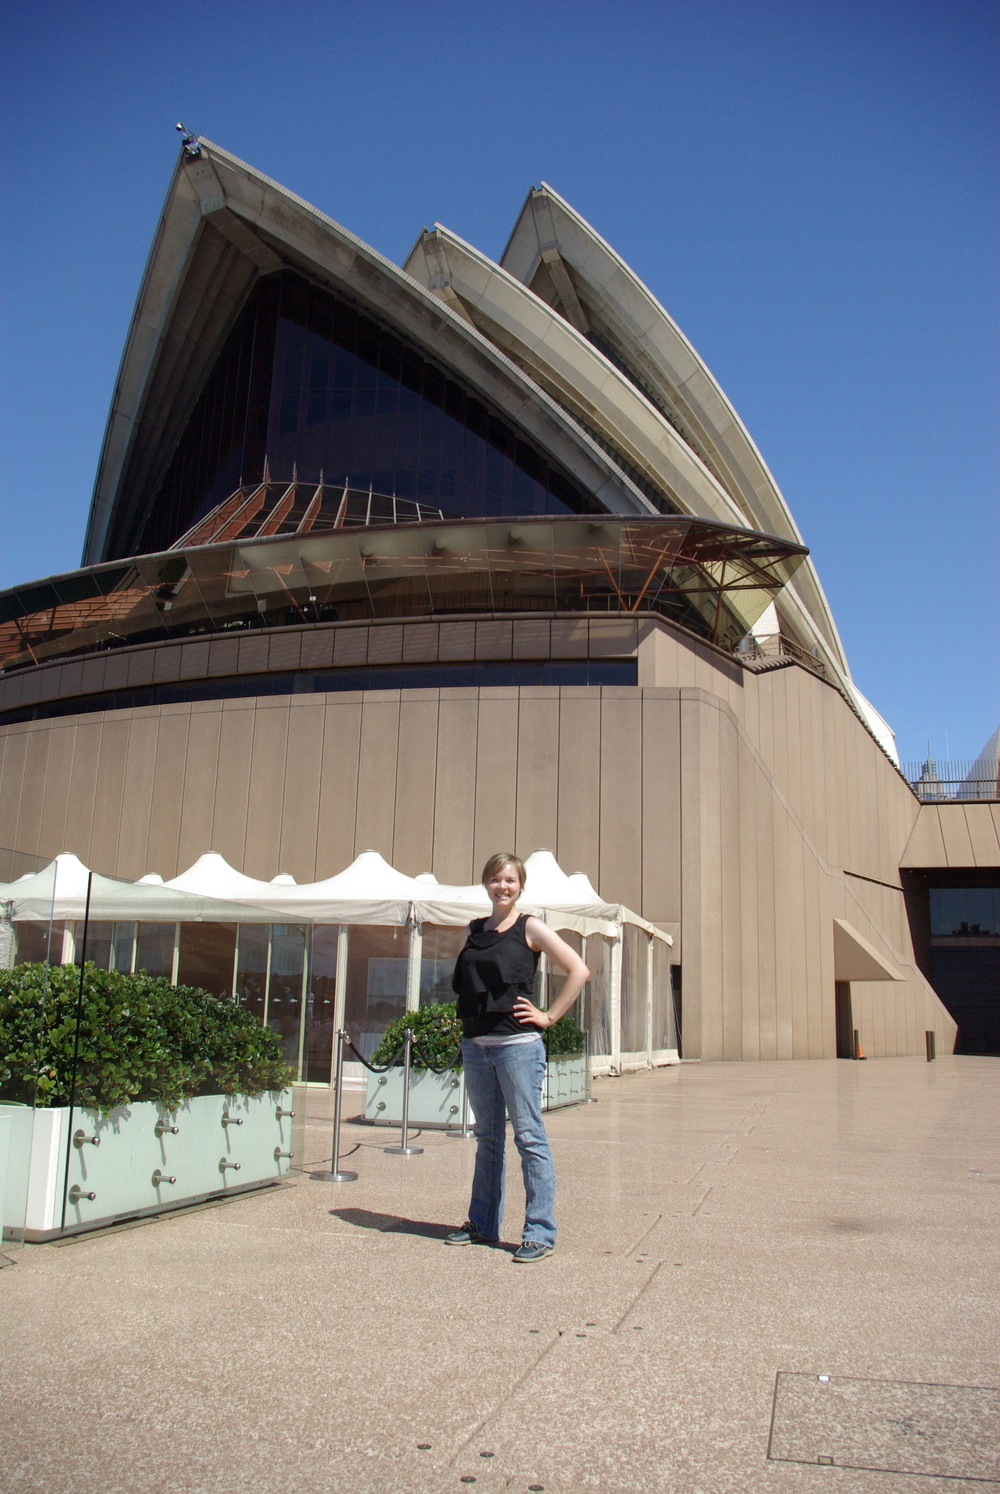 My beautiful wife at the Opera House